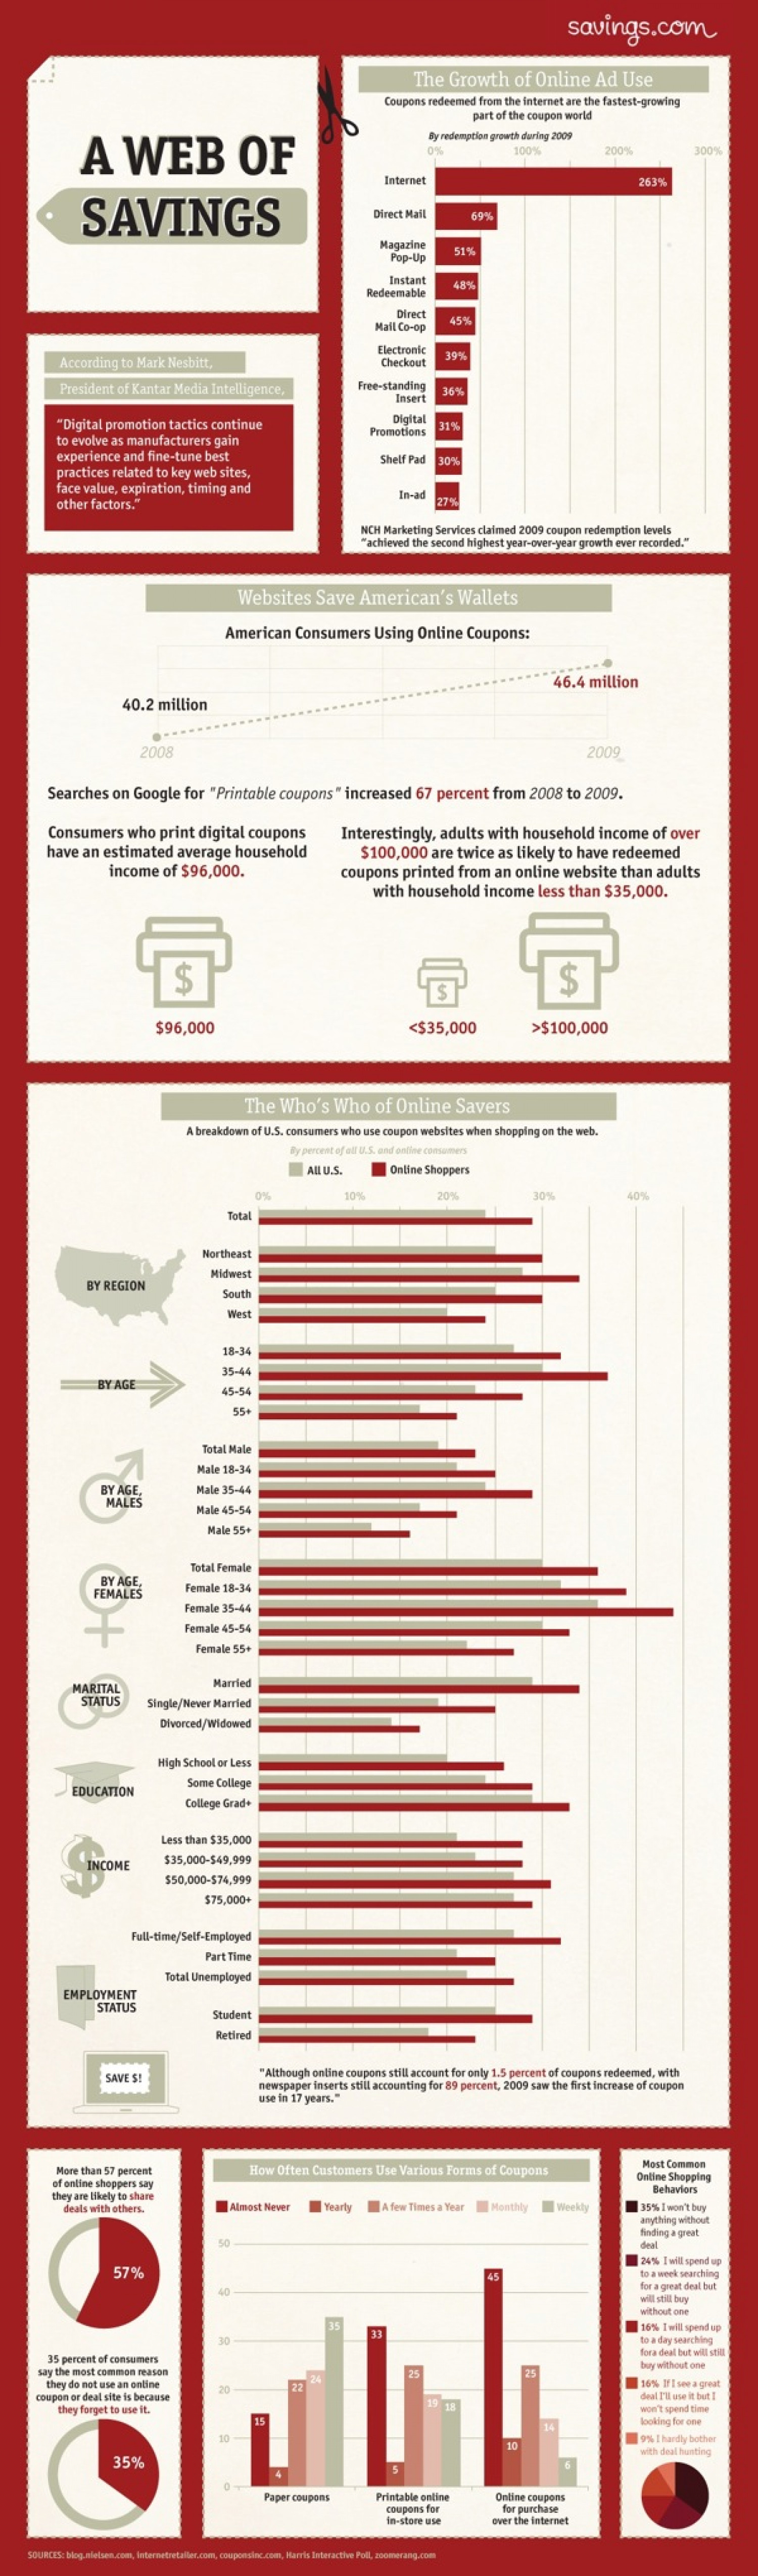 Saving Money with the Web Infographic